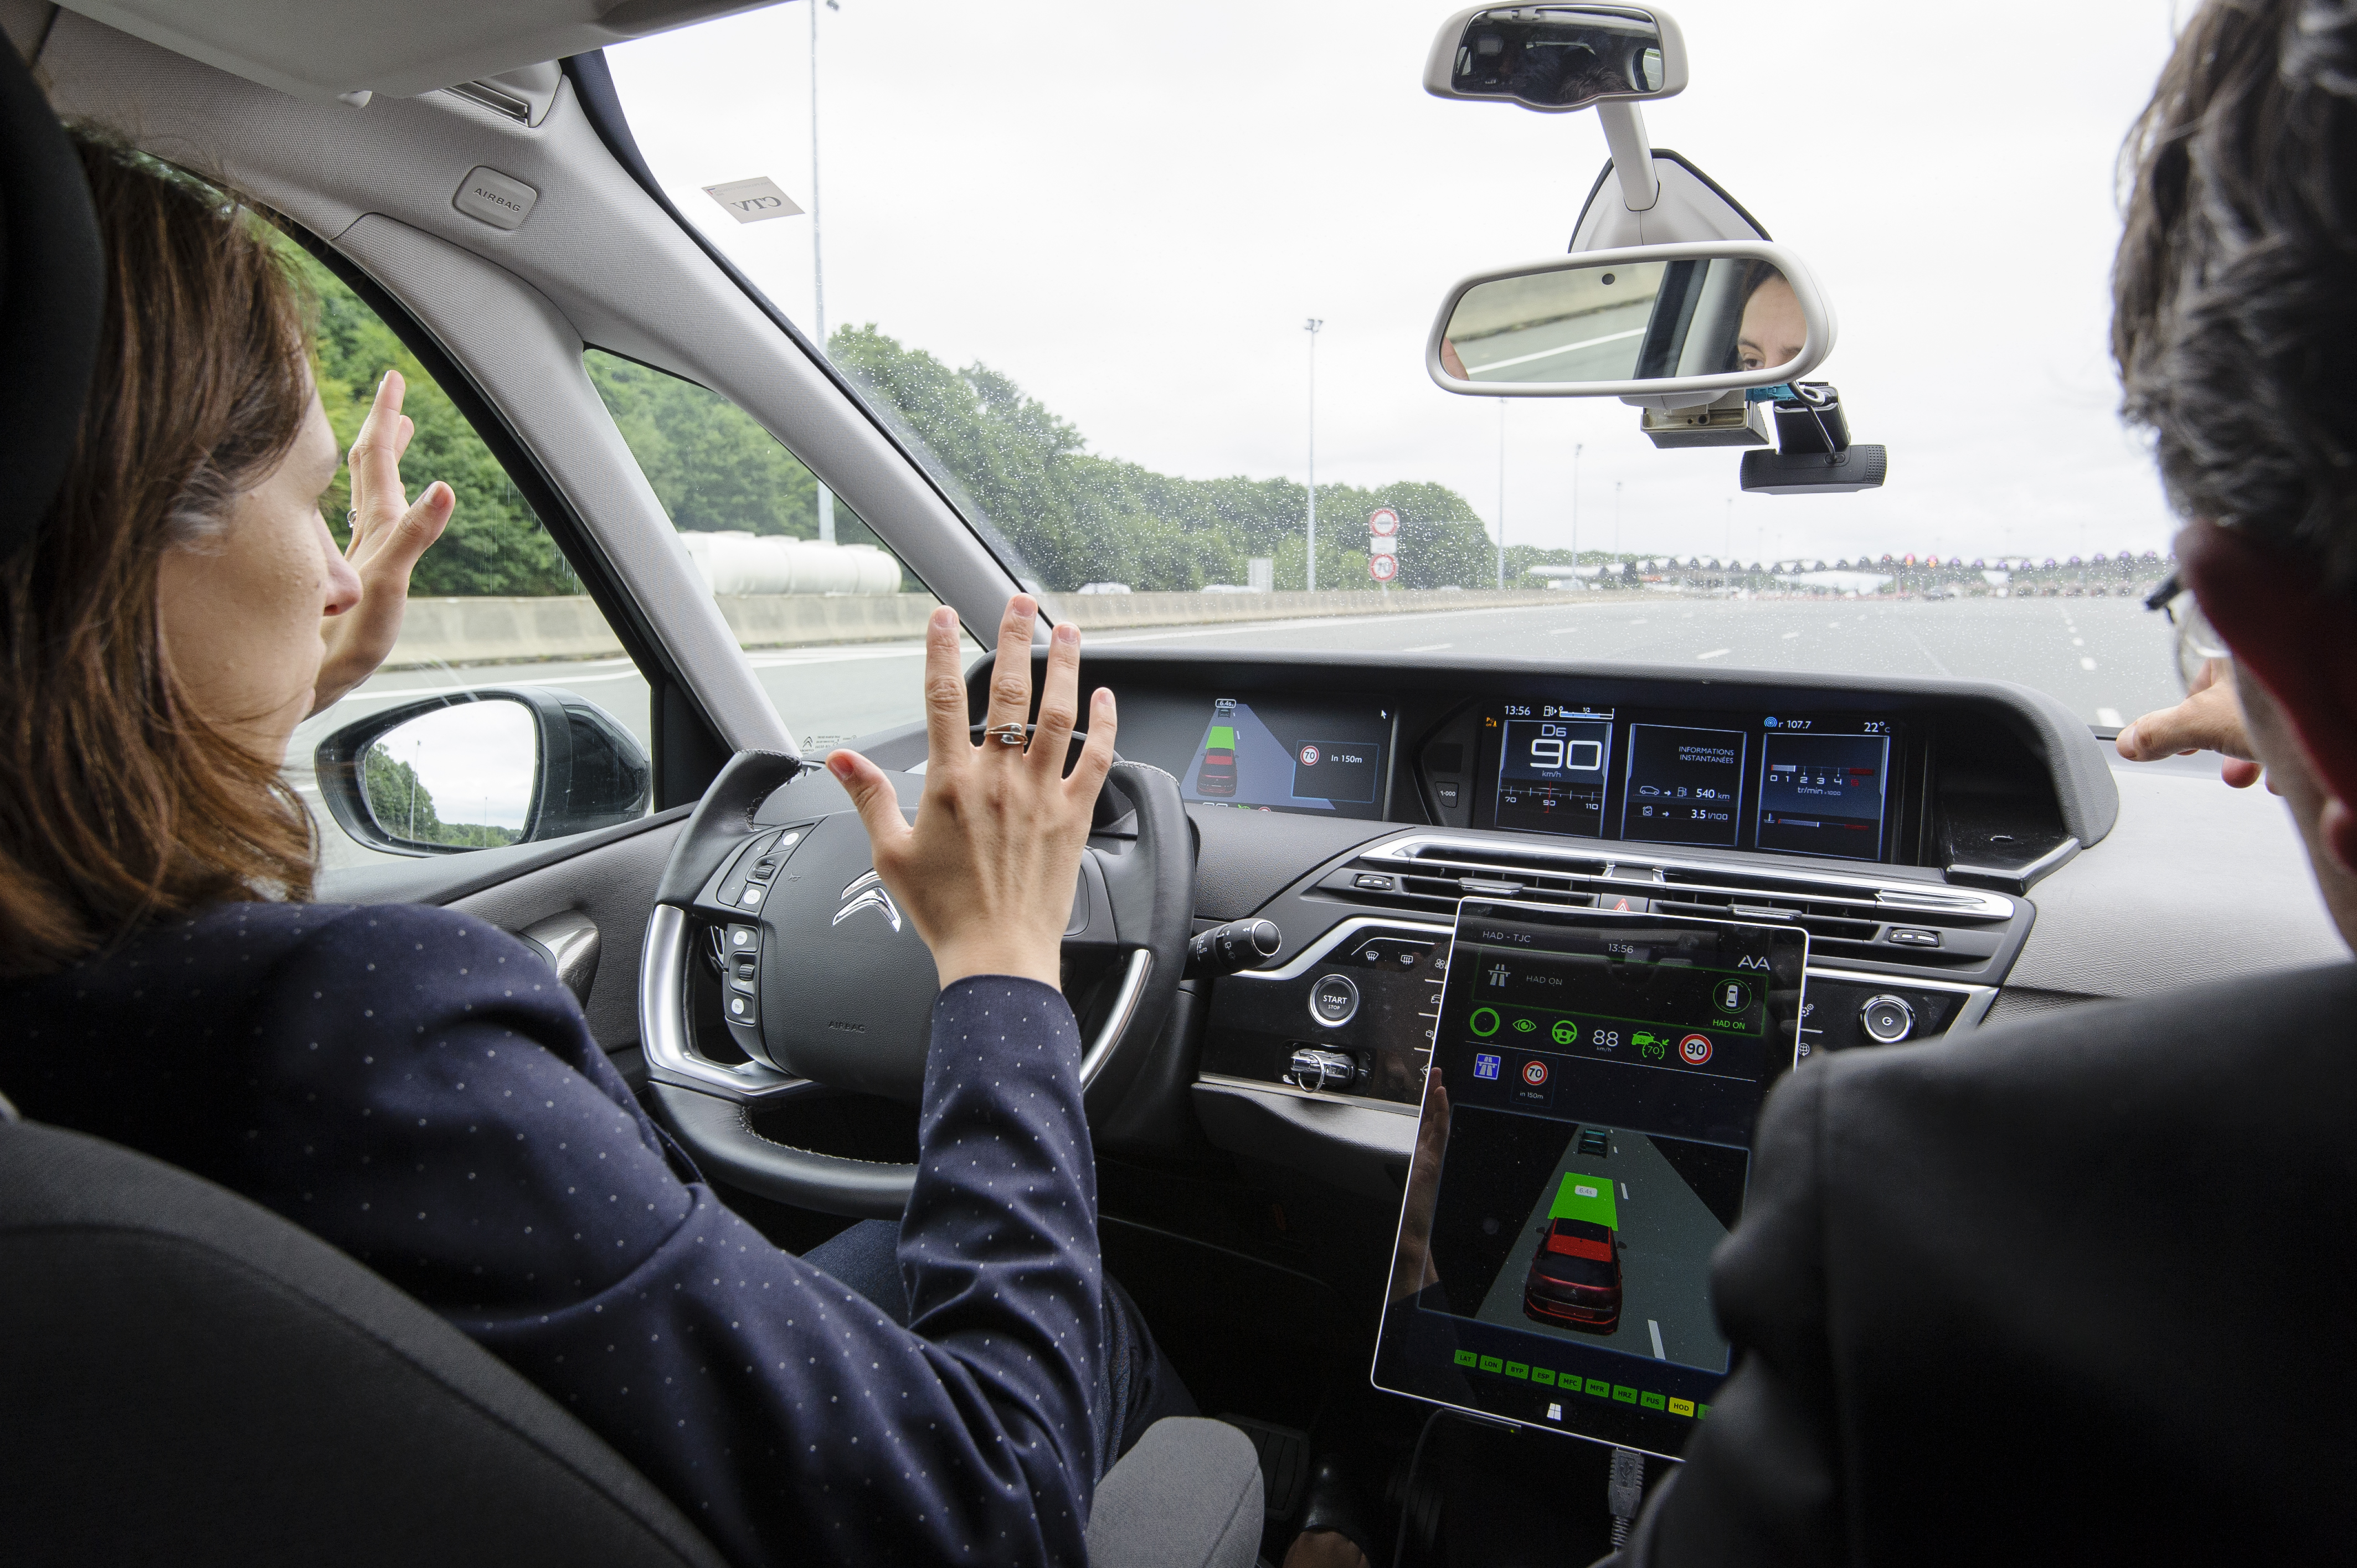 Road infrastructure provides a testing ground for autonomous vehicle rollout